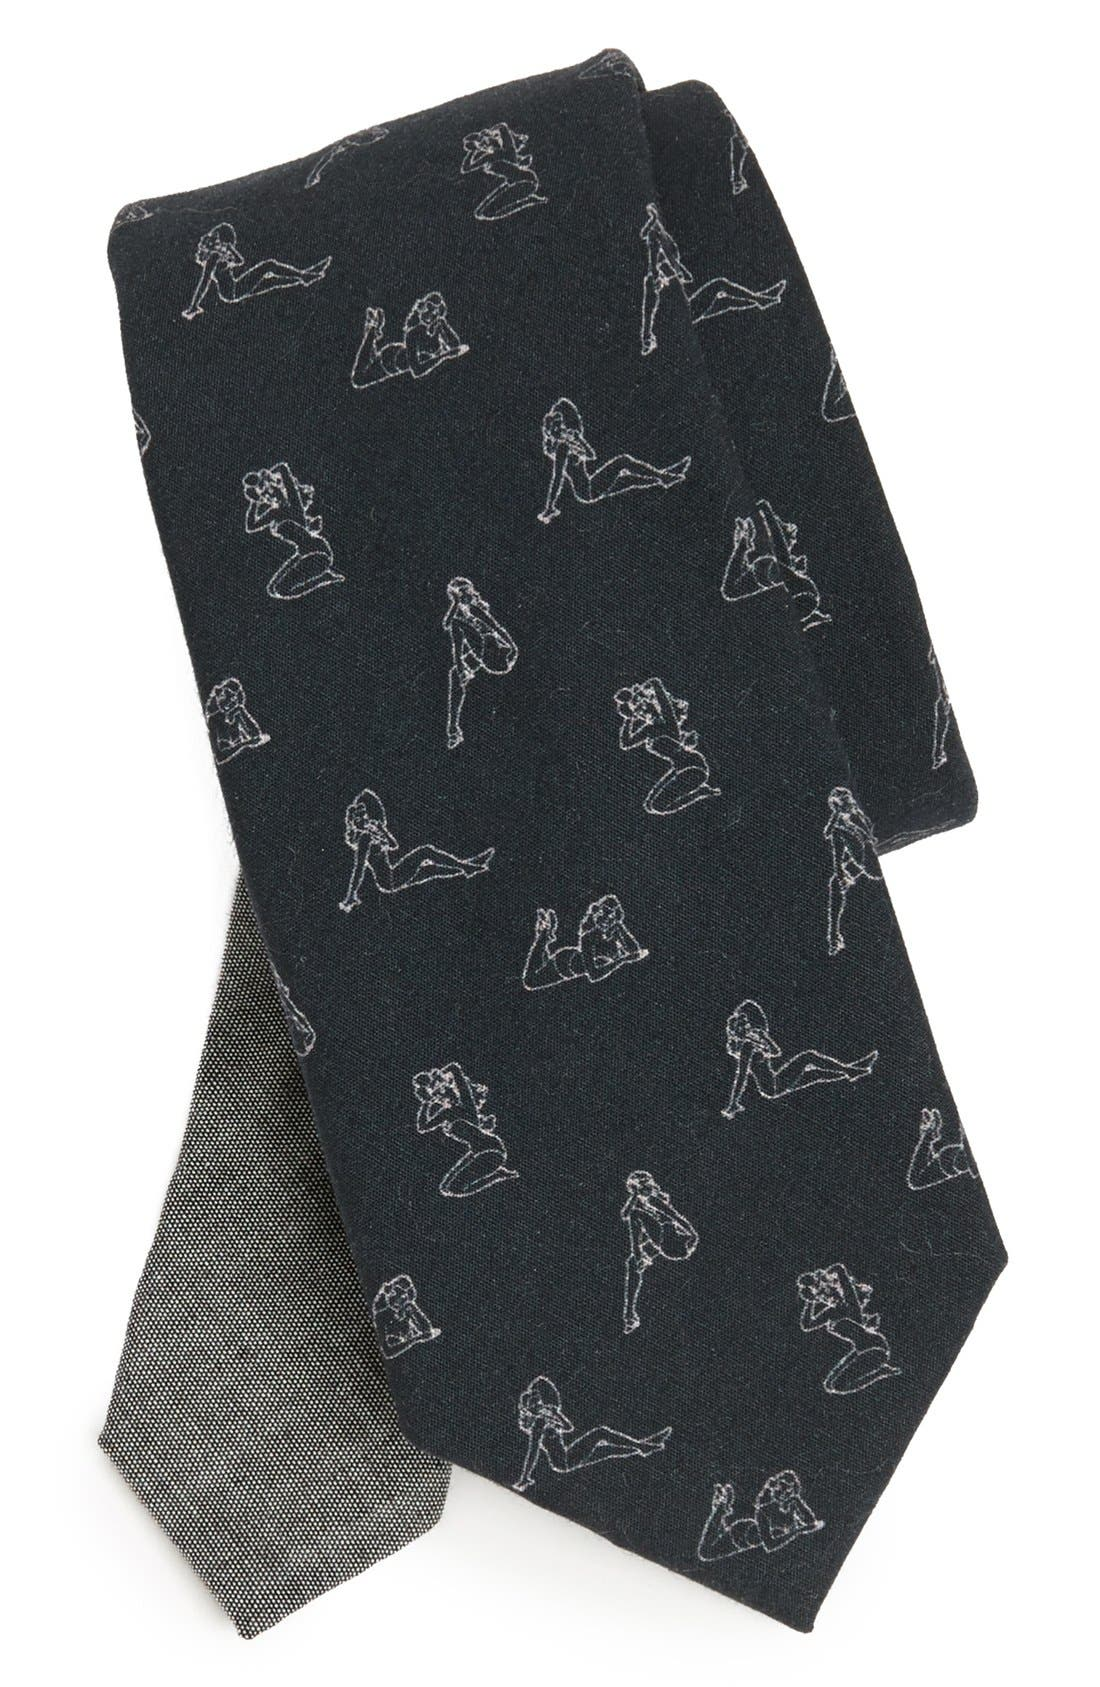 Alternate Image 1 Selected - EDIT by The Tie Bar 'Novelty' Cotton Tie (Nordstrom Exclusive)